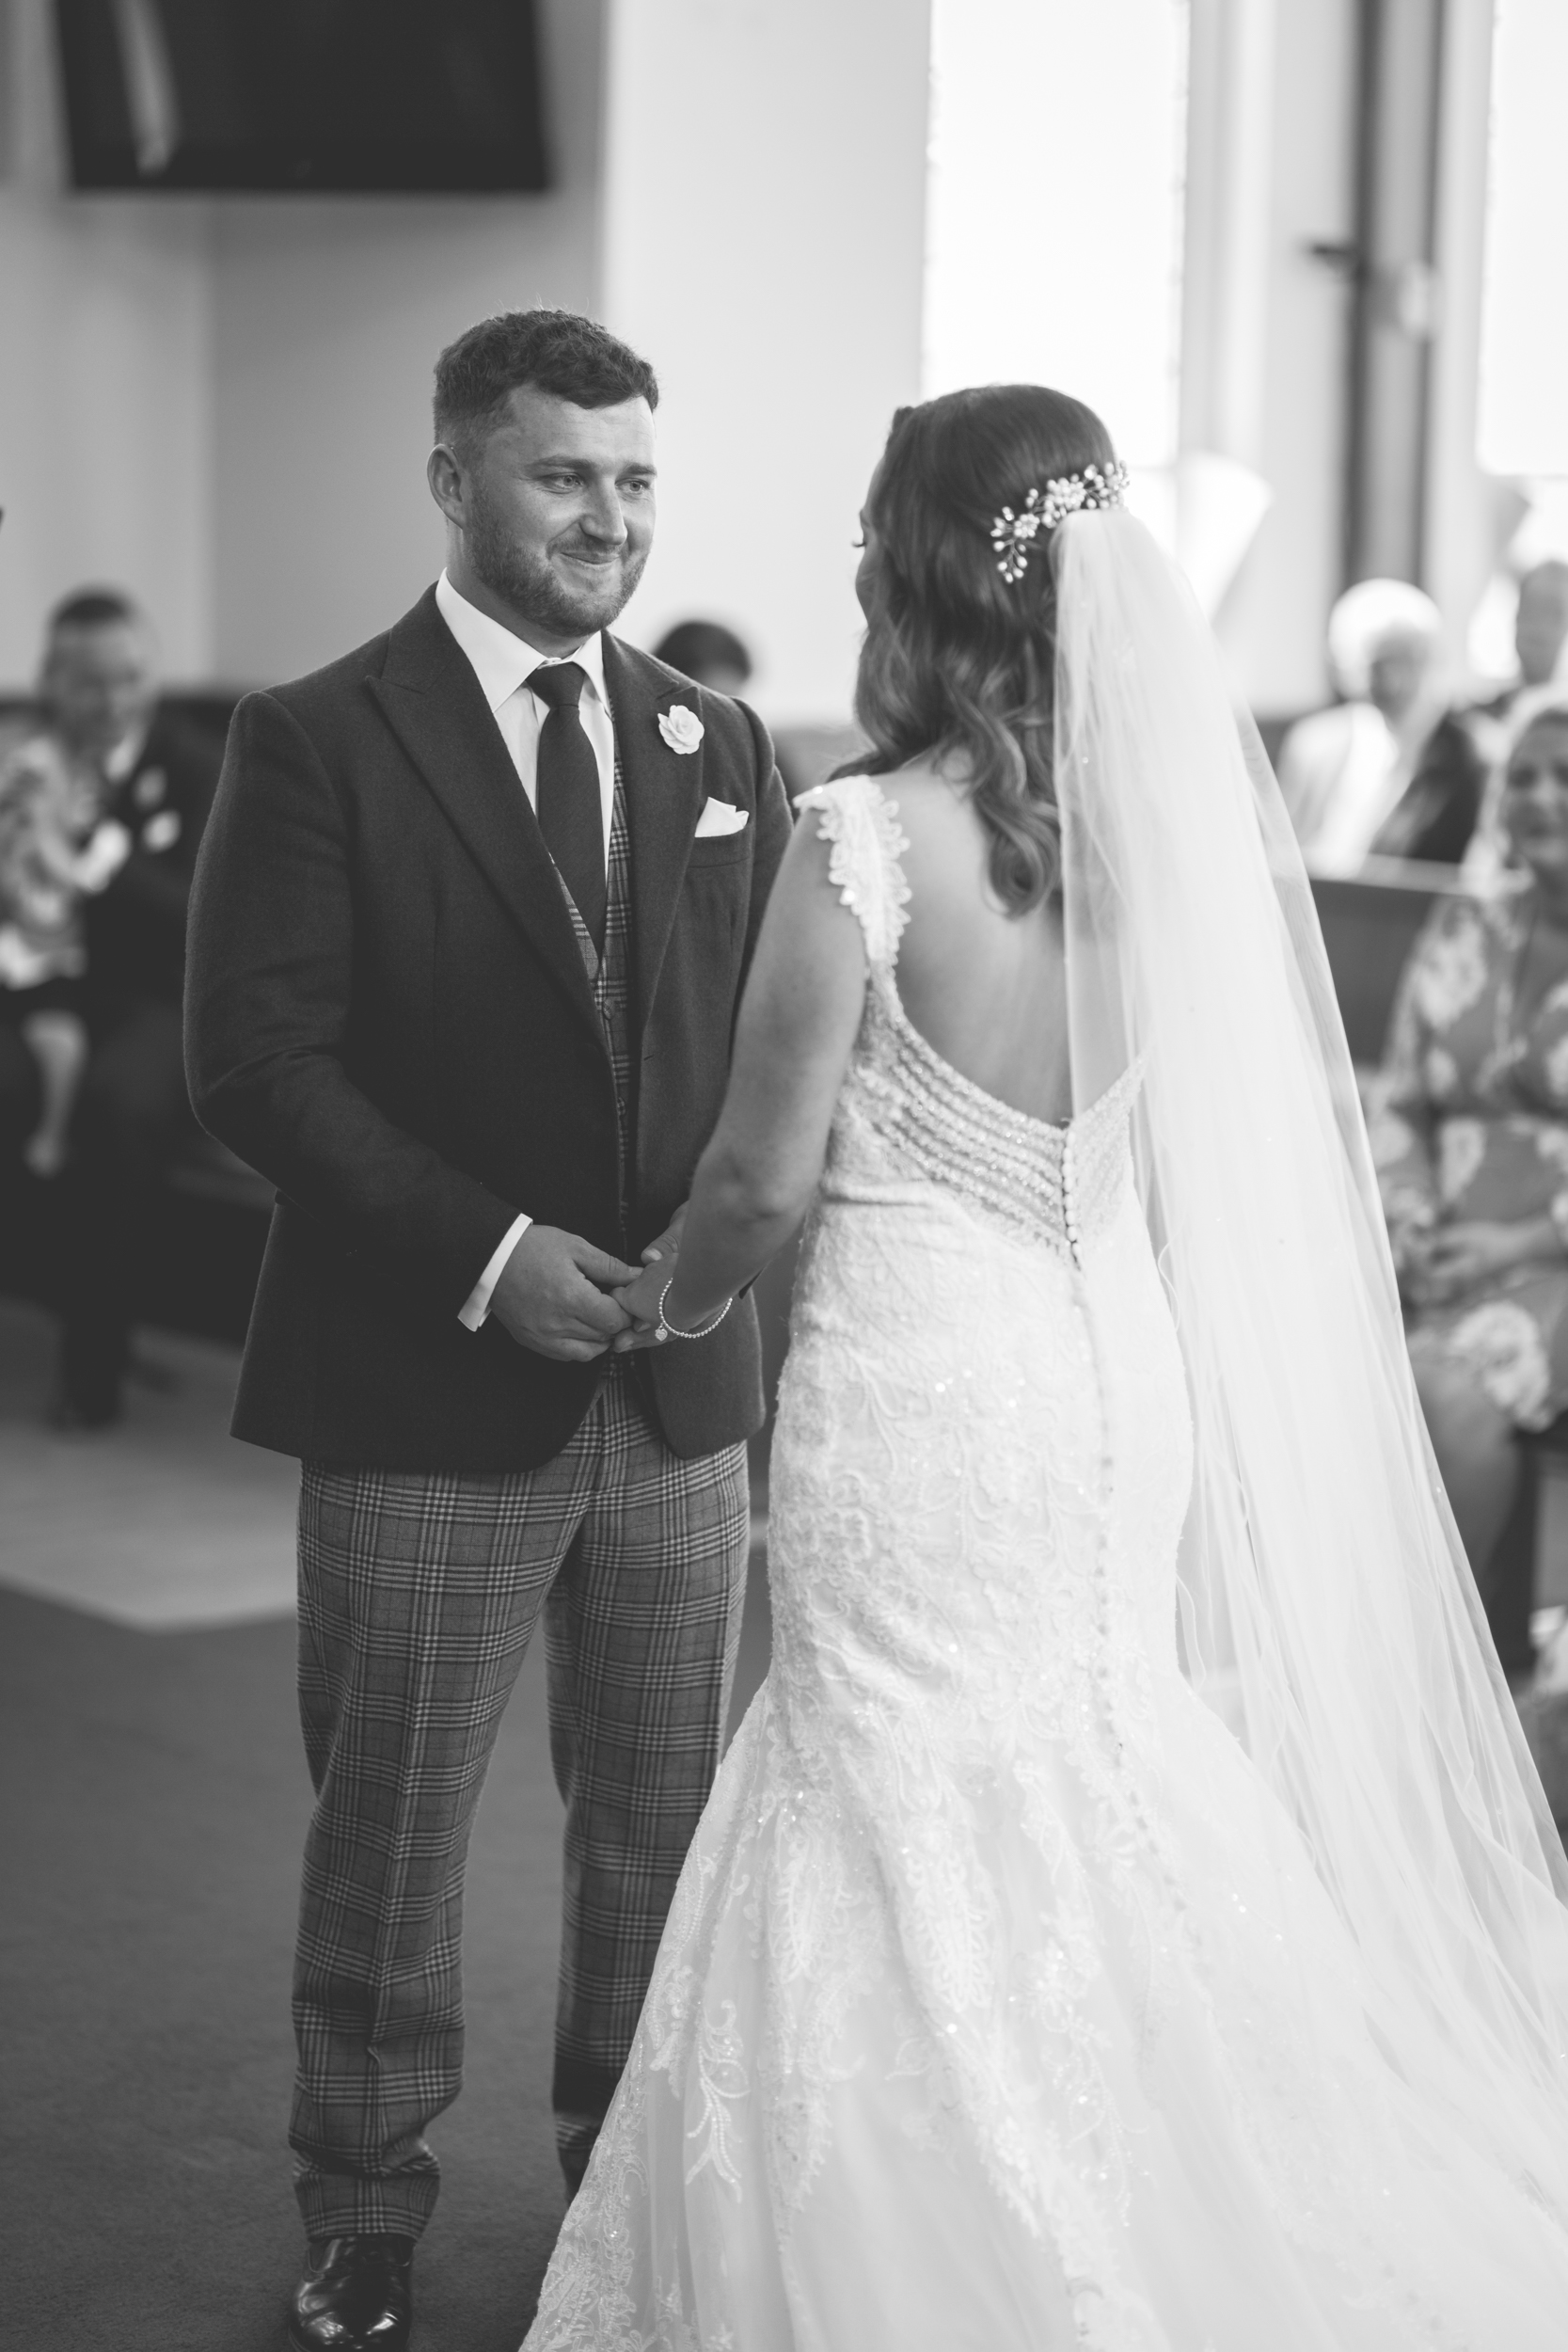 Brian McEwan | Northern Ireland Wedding Photographer | Rebecca & Michael | Ceremony-65.jpg